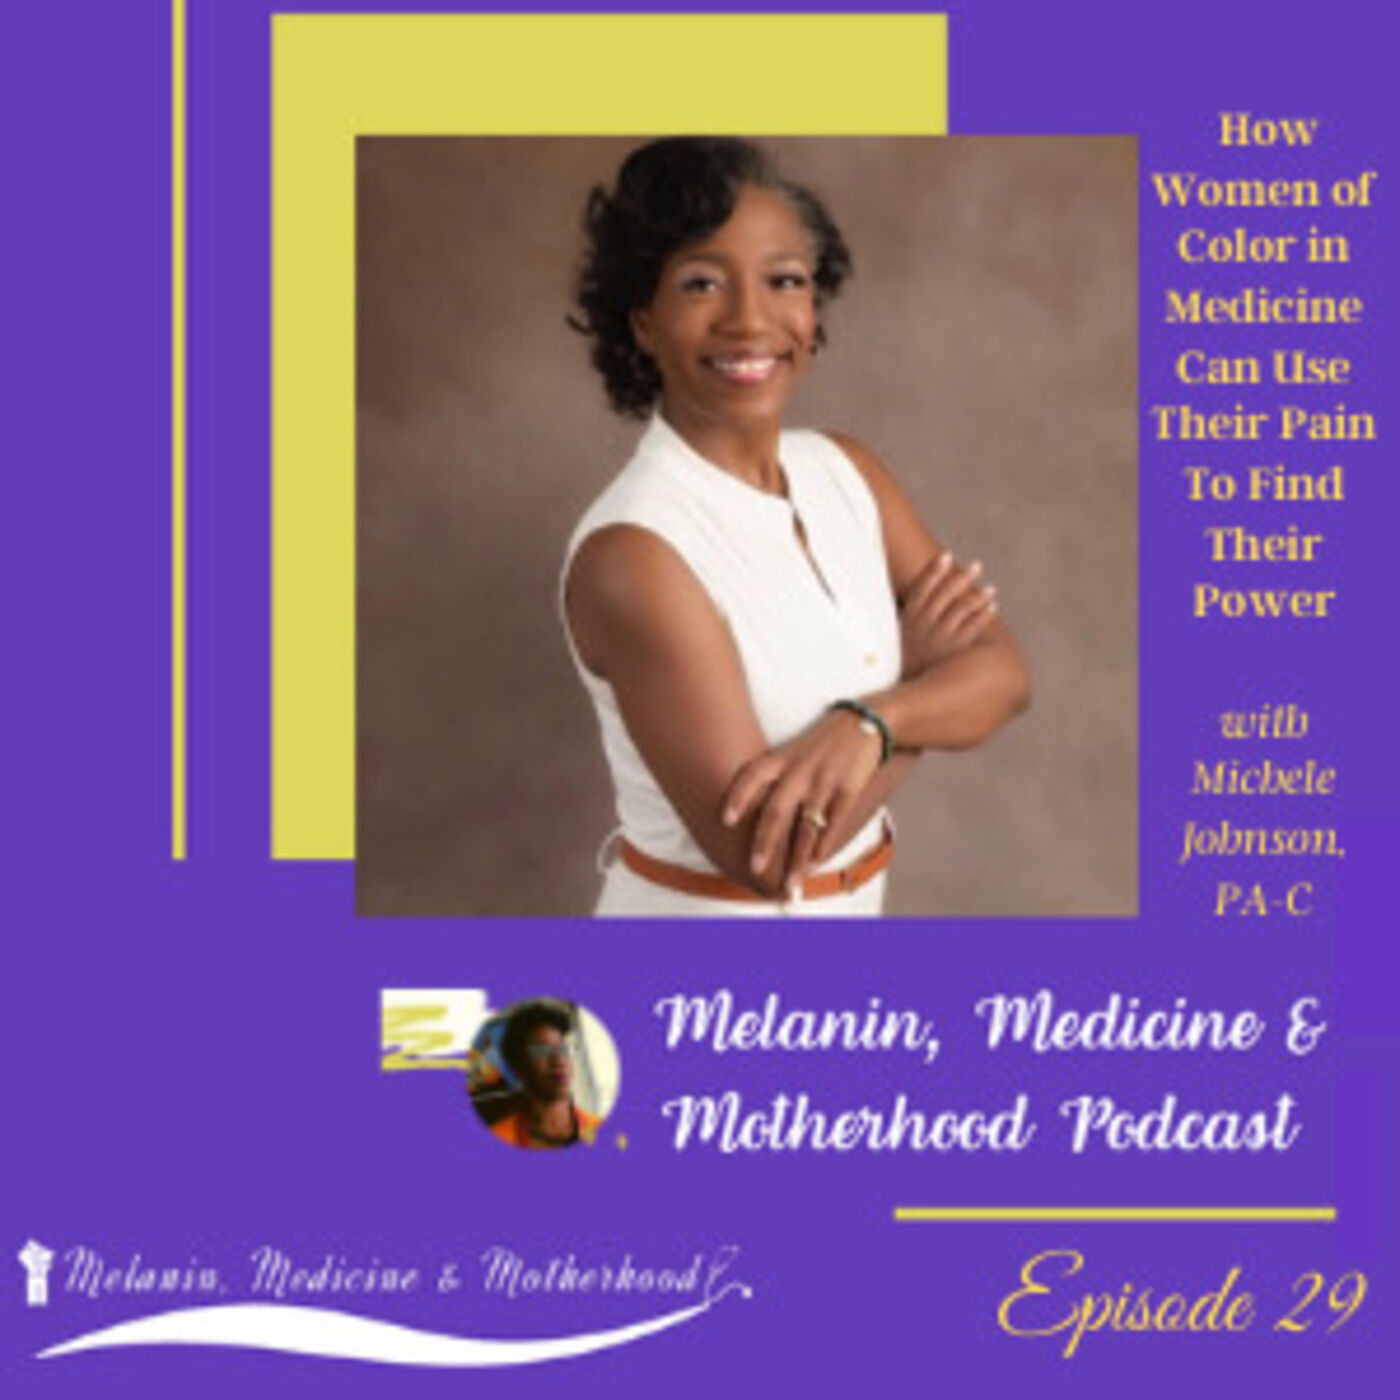 Episode 29: How Women of Color in Medicine Can Use Their Pain To Find Their Power